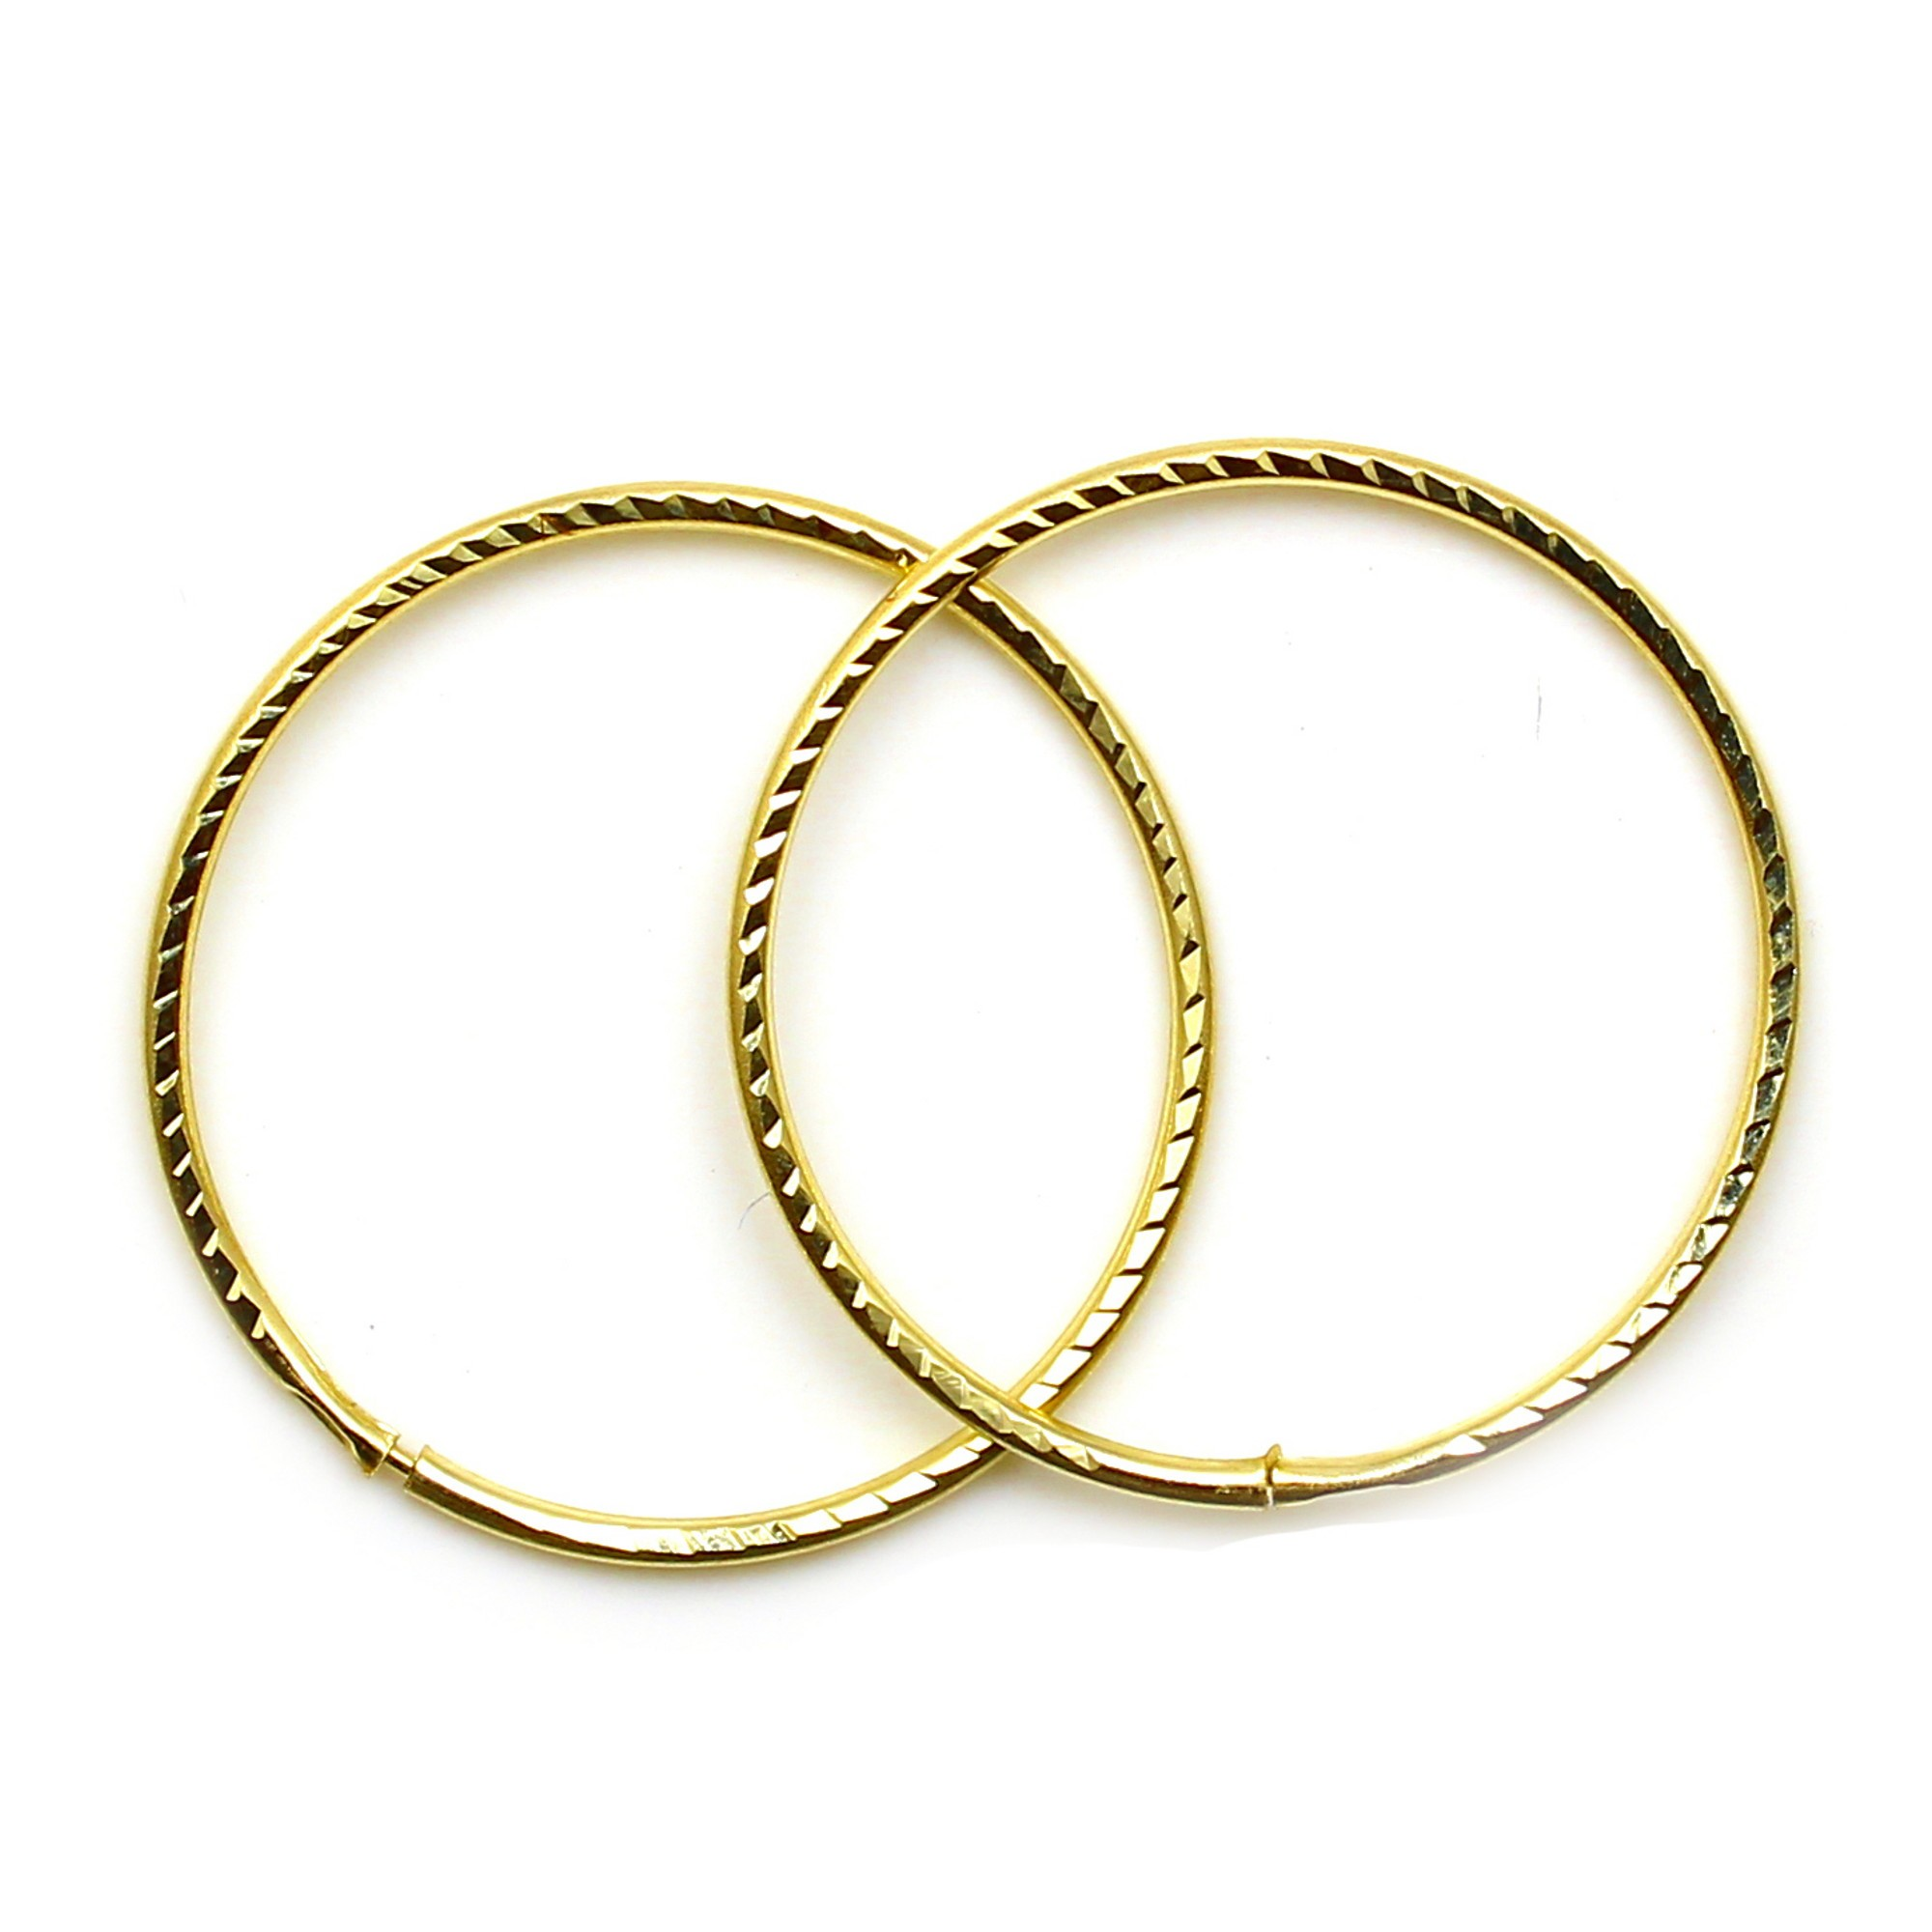 Arranview Jewellery 9ct Gold 18mm Plain Sleeper Hoops (1 Pair) Alzuy